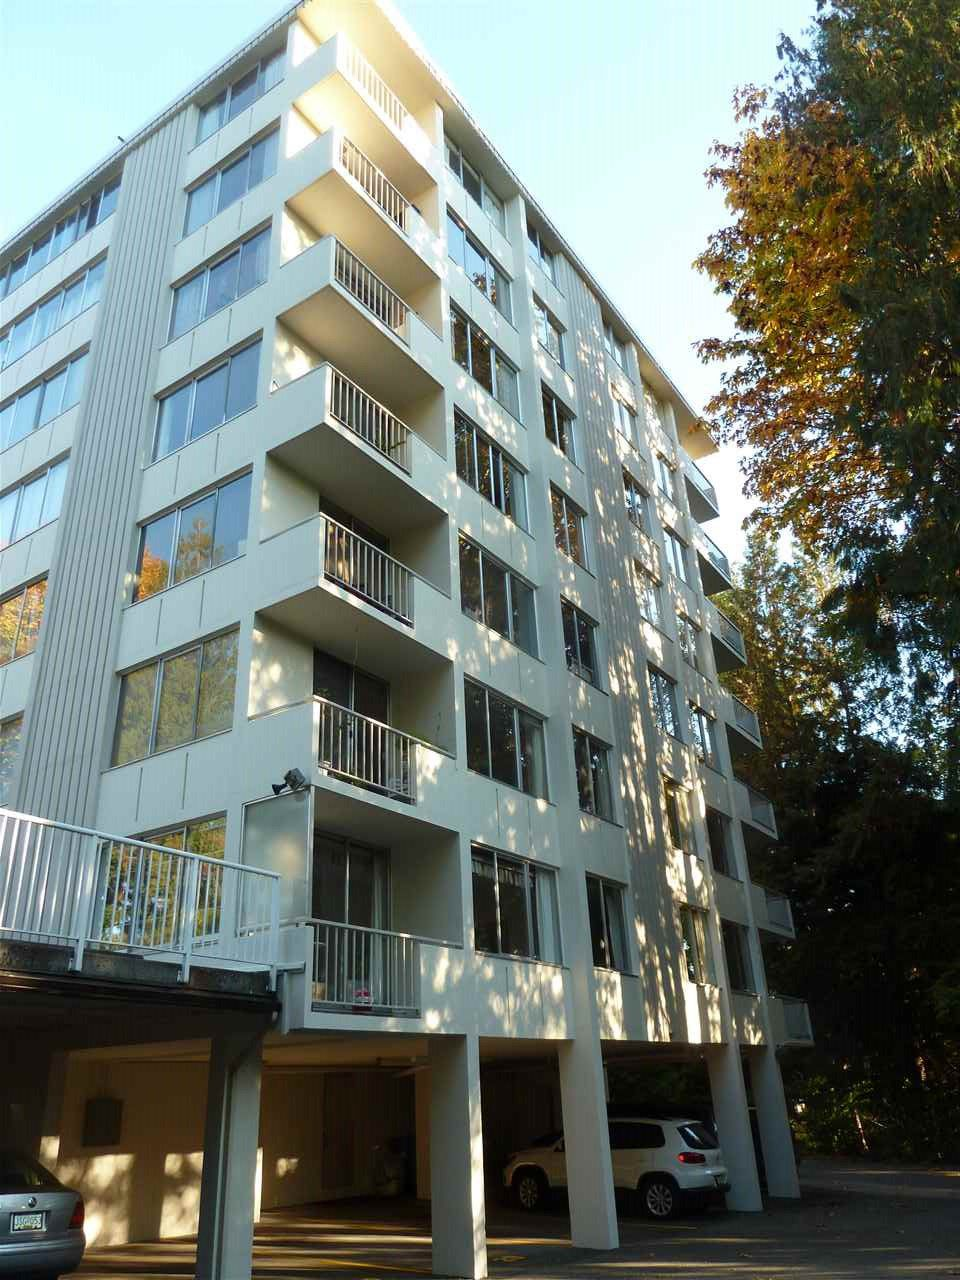 Main Photo: 103 1785 ESQUIMALT Avenue in West Vancouver: Ambleside Condo for sale : MLS®# R2330636